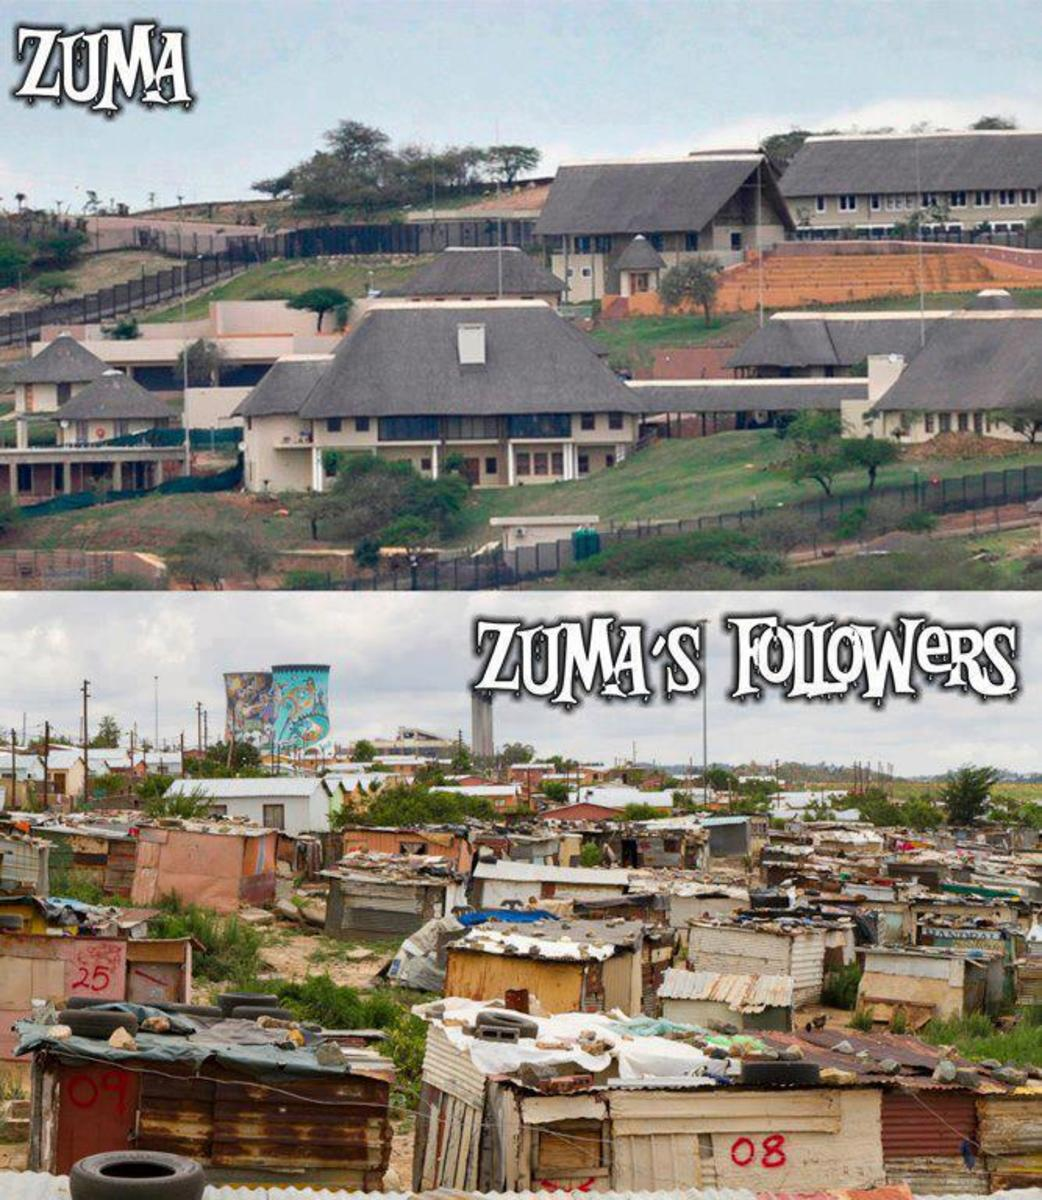 Jacob Zuma says that much remains to be done to improve people's livelihoods and the disparities between rich and poor. However, he said access to basic services, such as water through pipes, electricity and garbage removal has more than doubled sinc